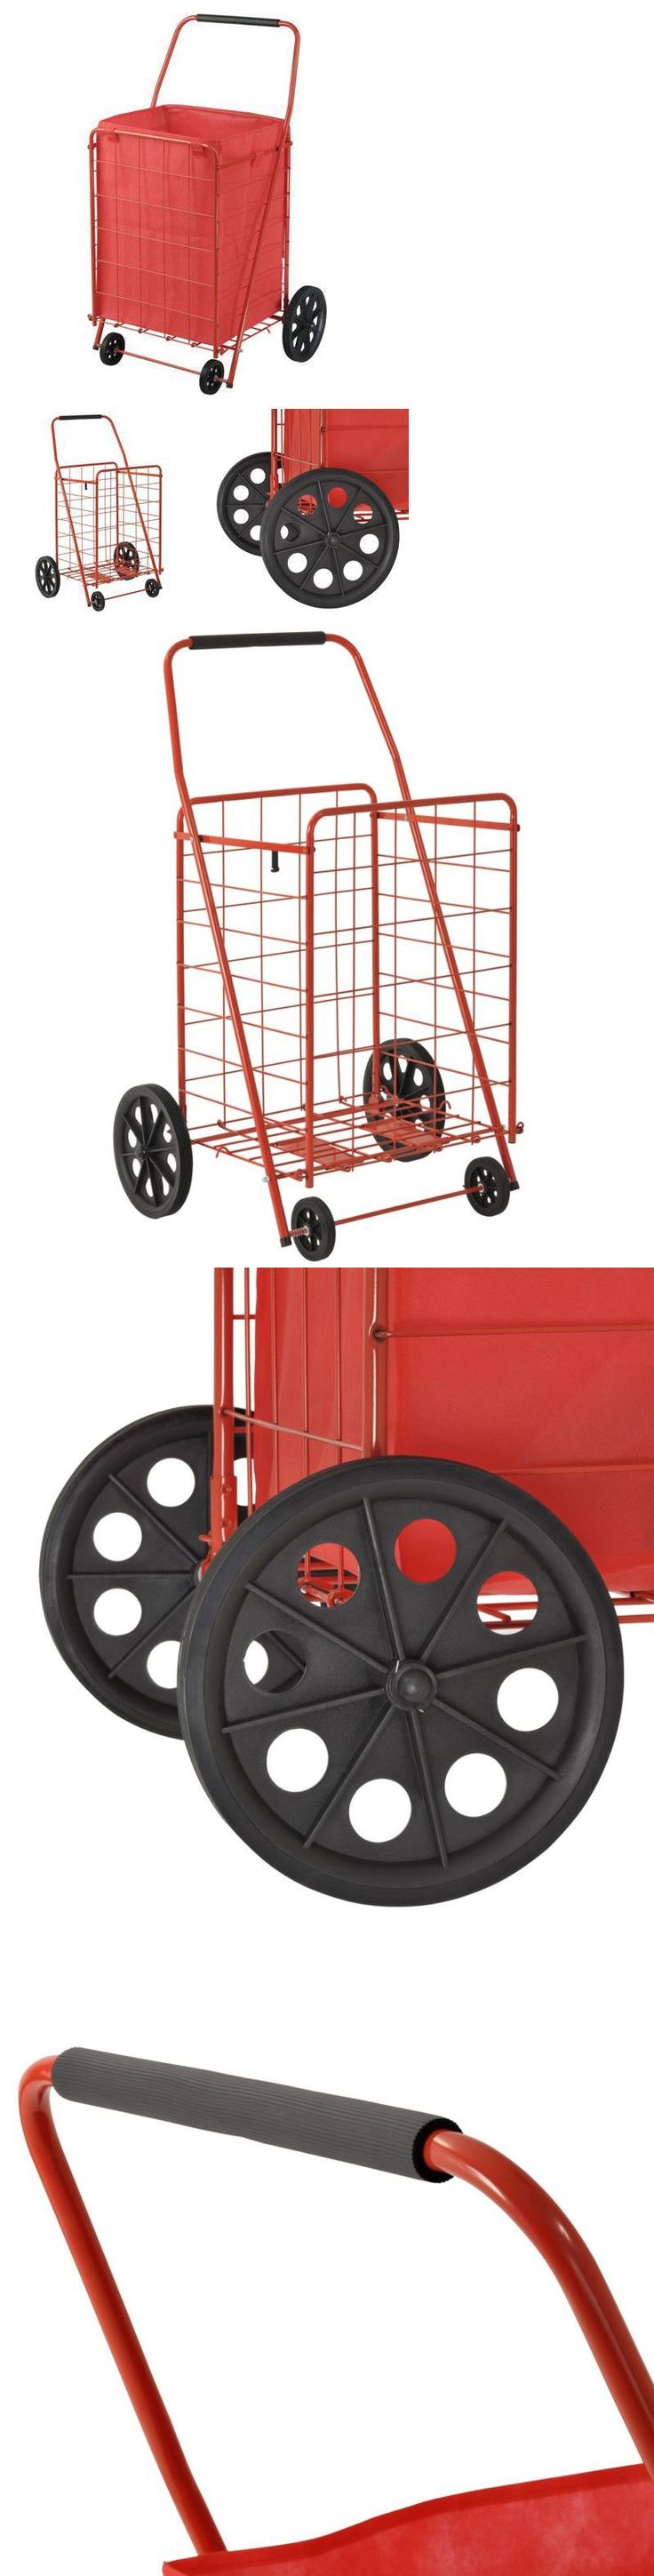 Housekeeping and Organizing 56140: Shopping Grocery Cart + Liner Laundry Basket Folding Wheels Foldable Portable -> BUY IT NOW ONLY: $49.99 on eBay!